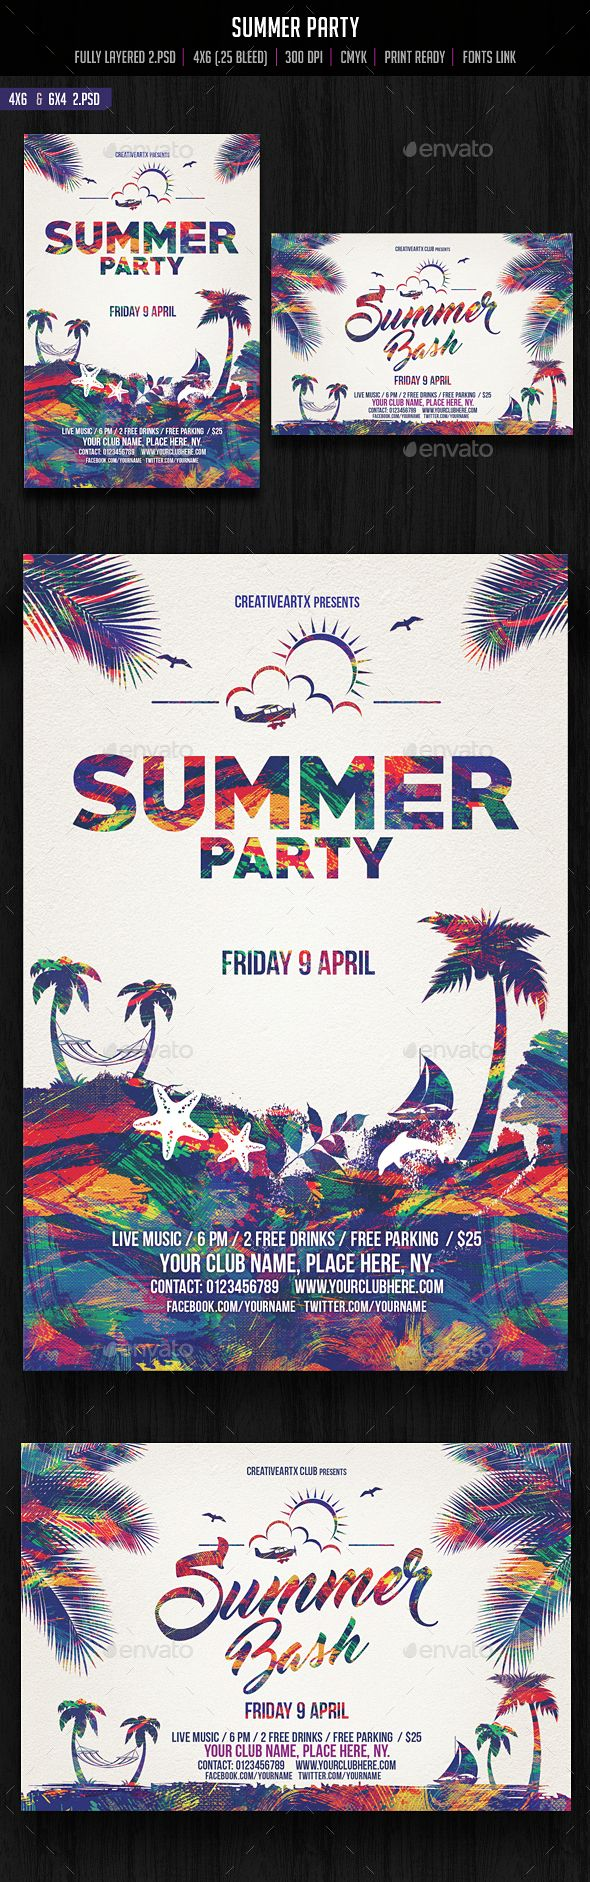 Summer Party Flyer Template PSD. Download here: http://graphicriver.net/item/summer-party-flyer/15140036?ref=ksioks